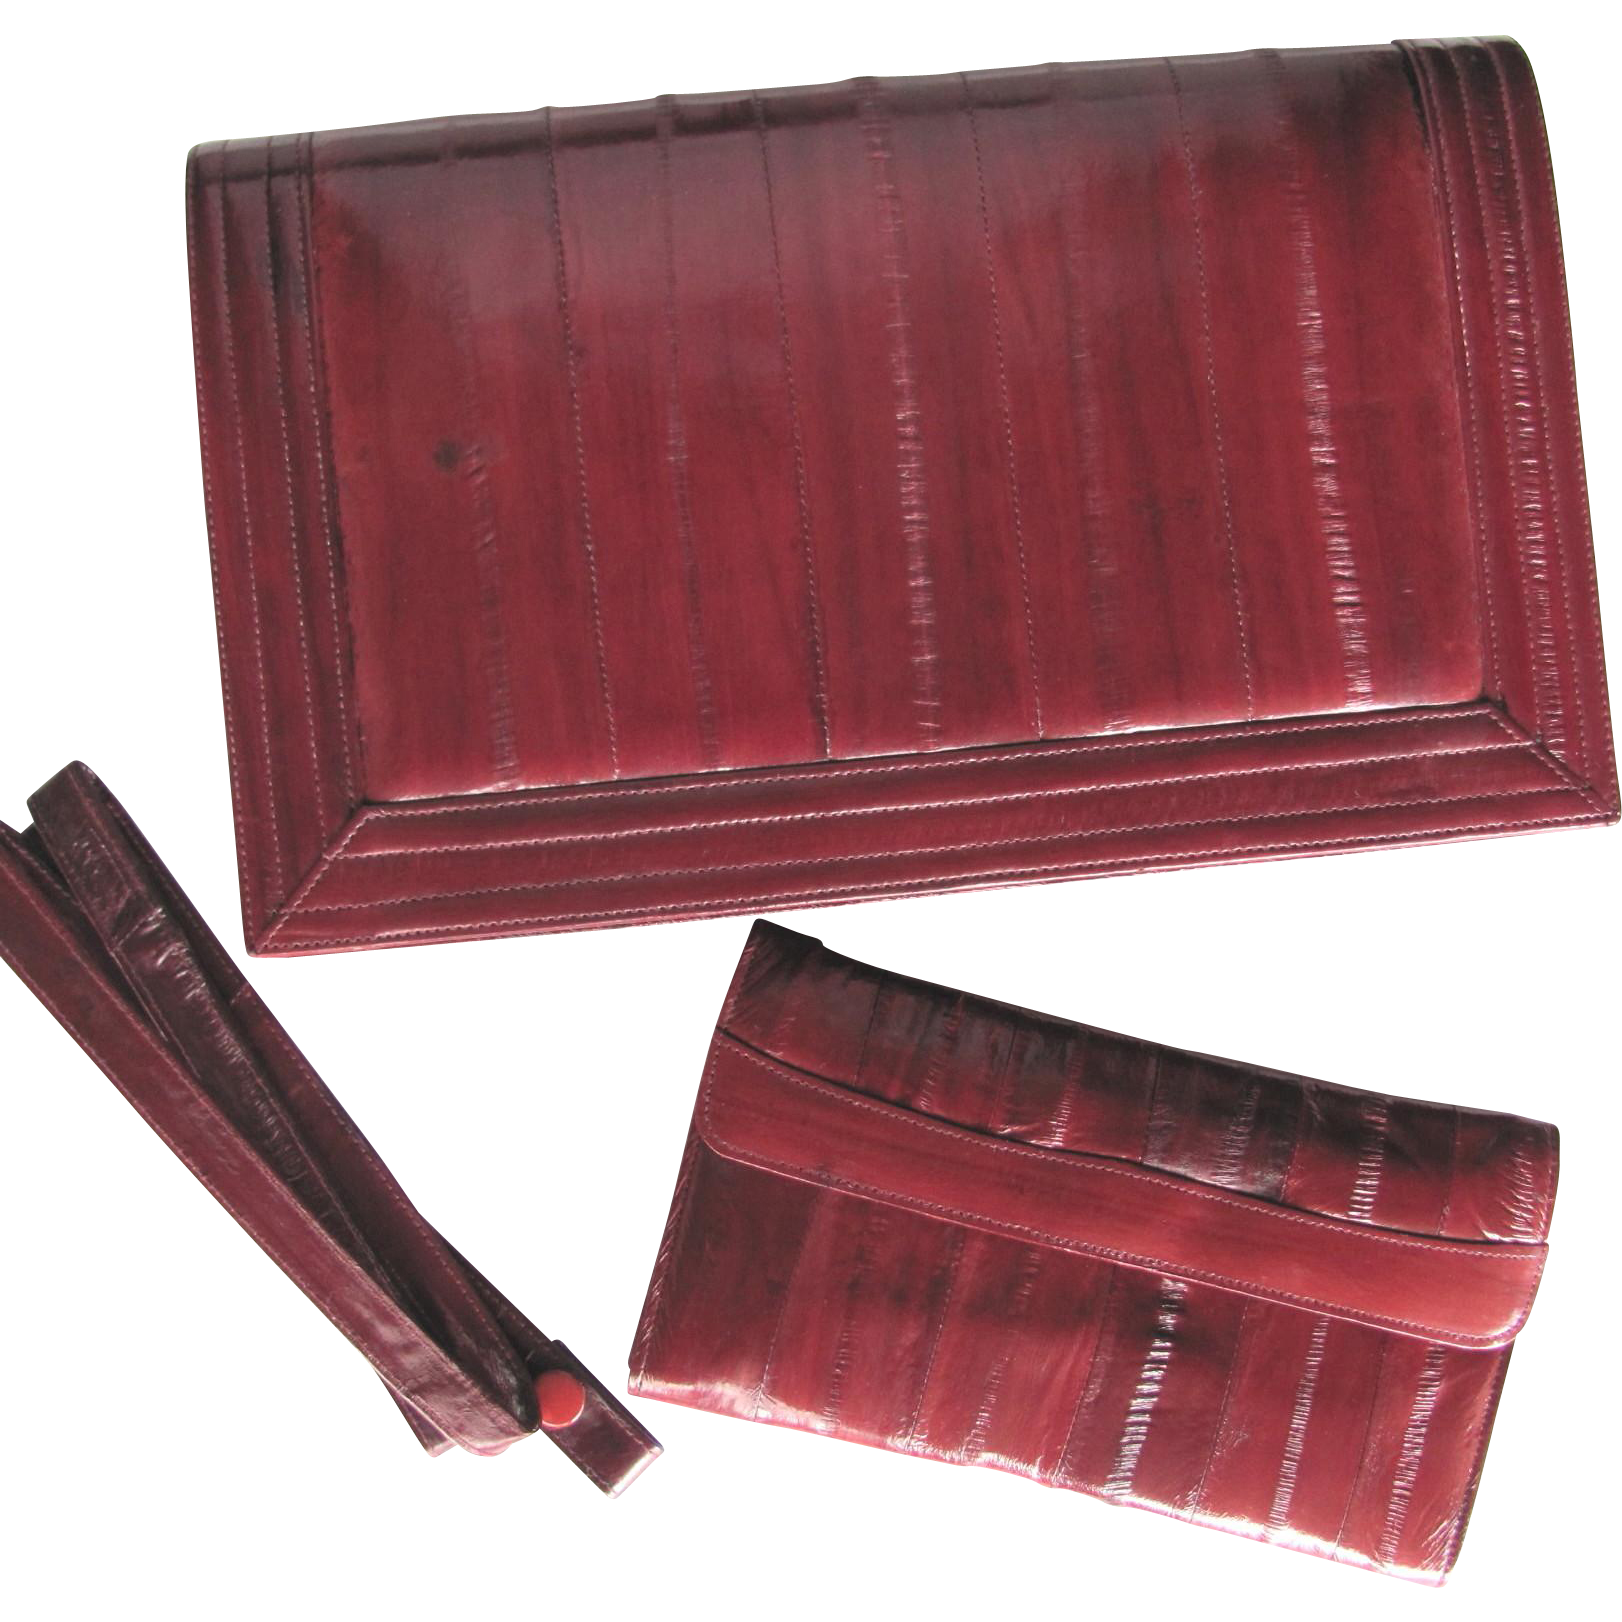 Vintage Eel Skin Clutch in Maroon with Matching Wallet and Convertible Strap